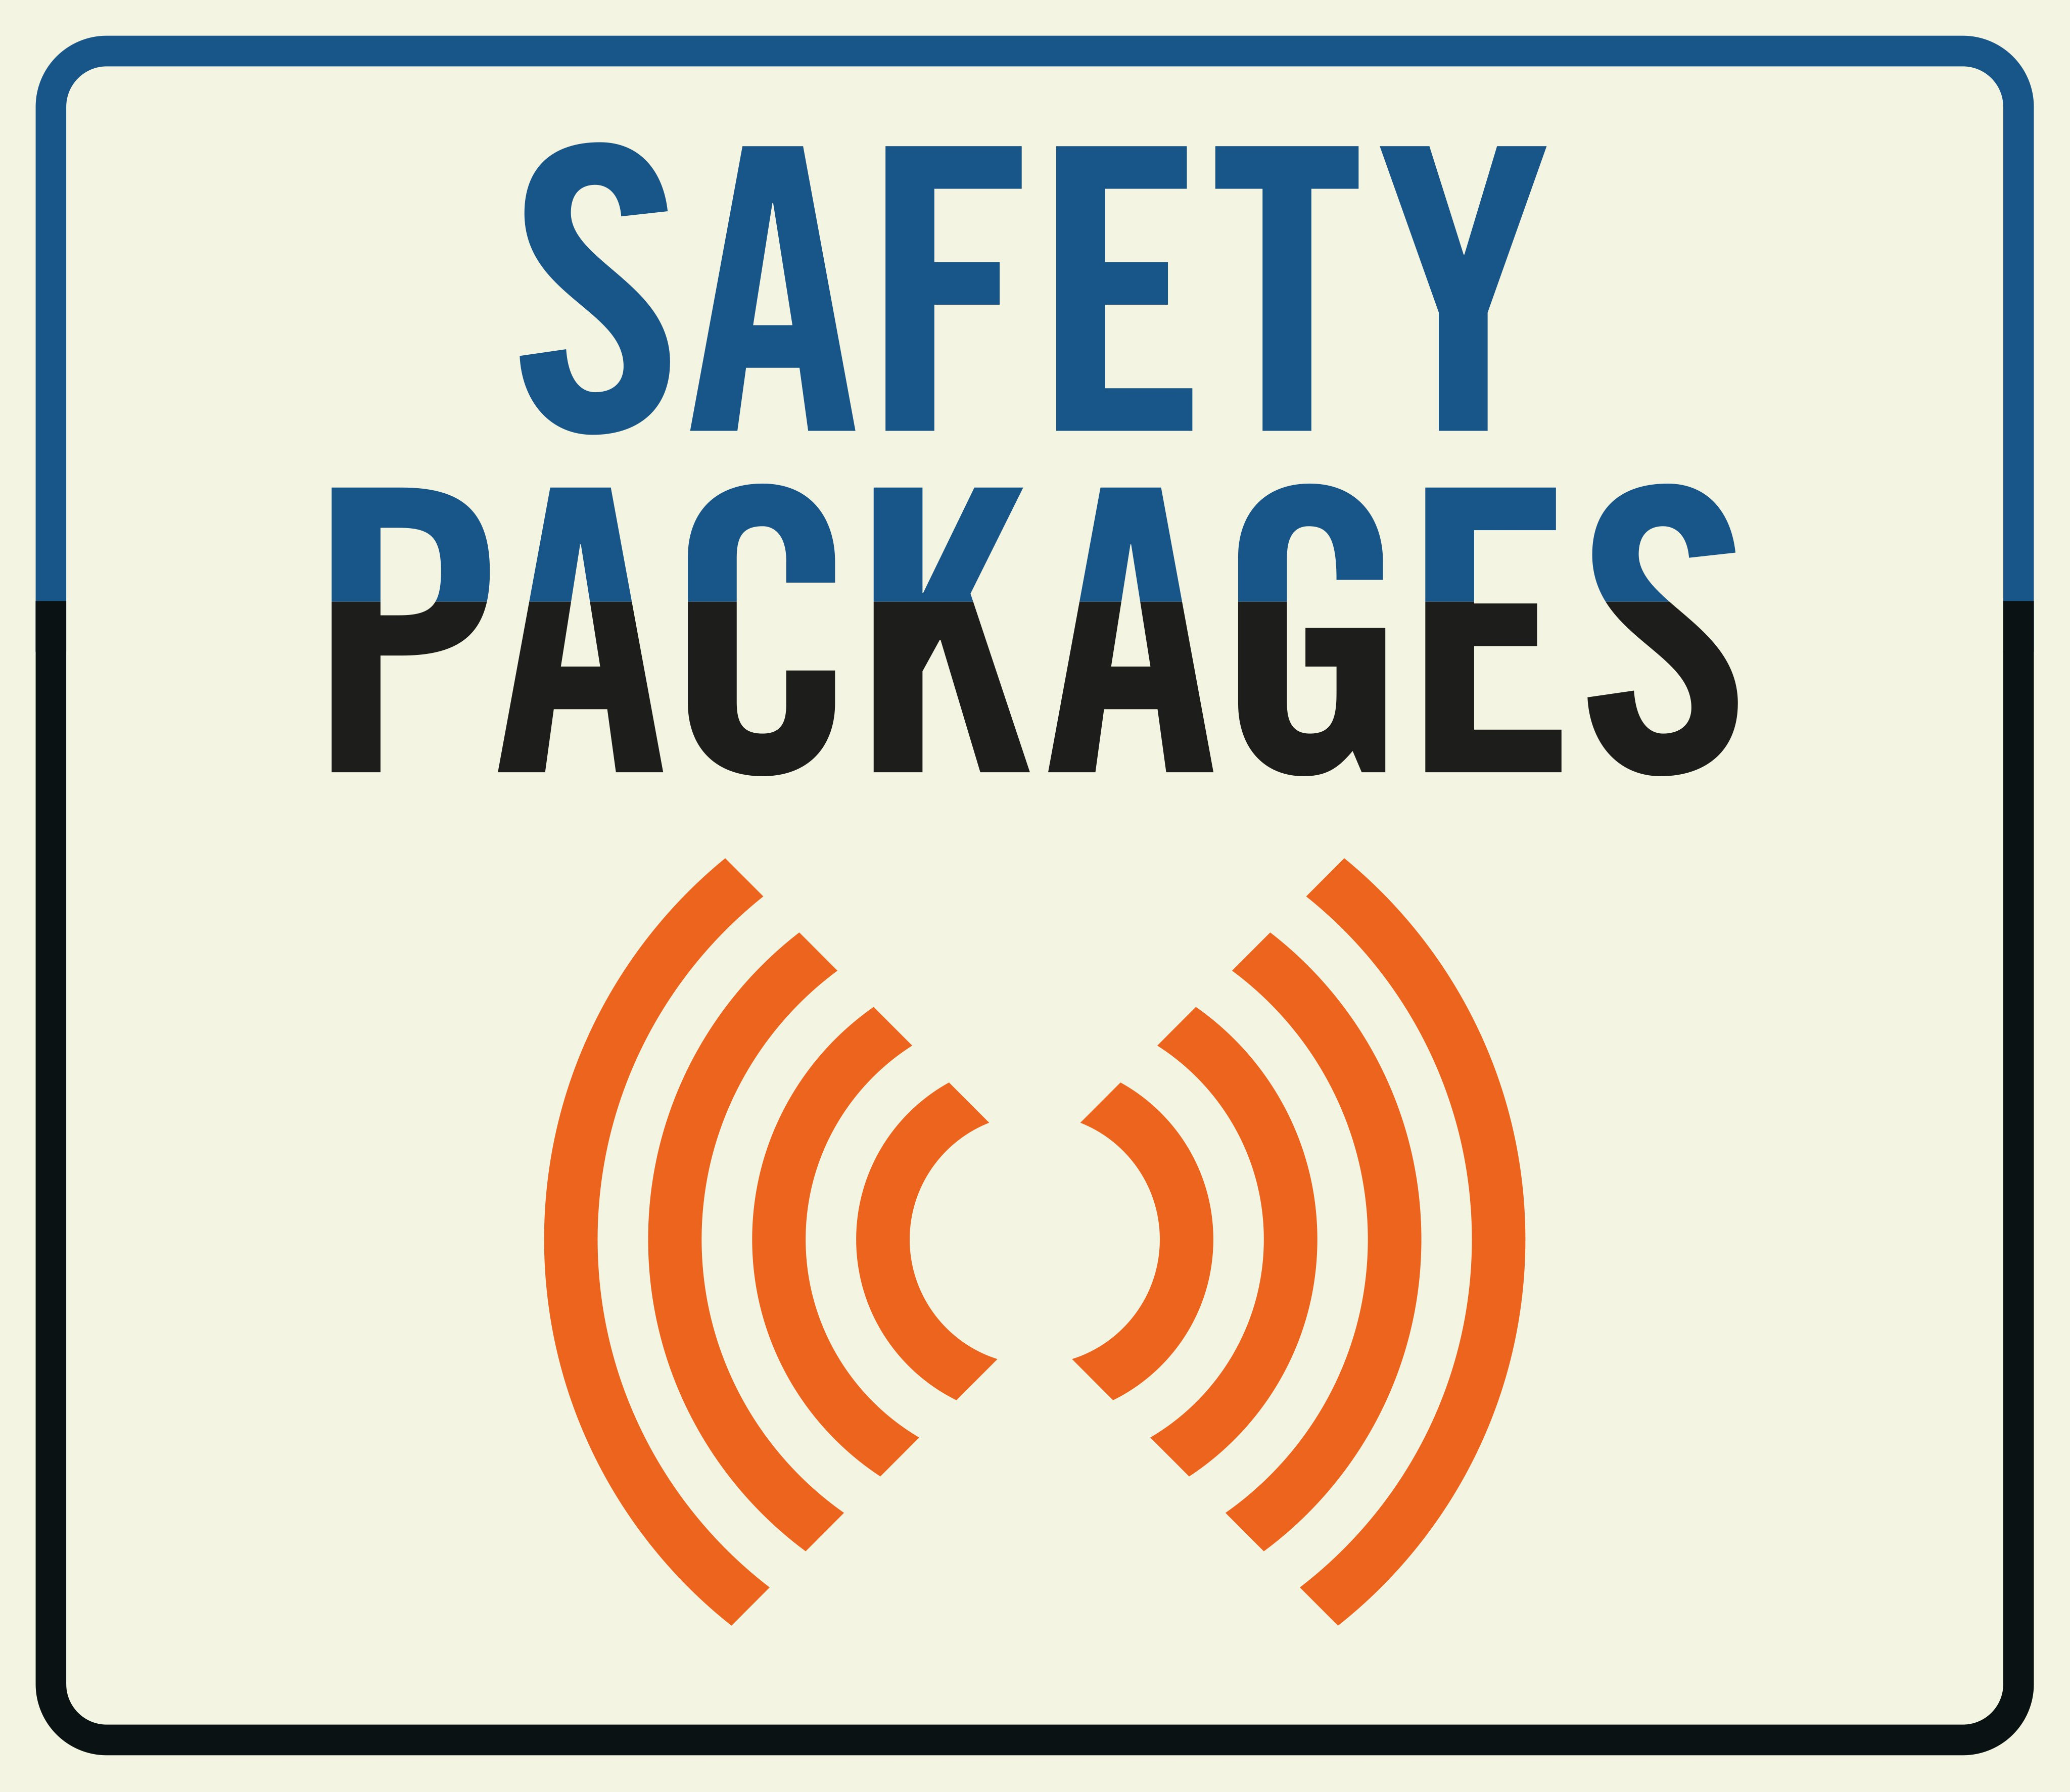 Safety Packages